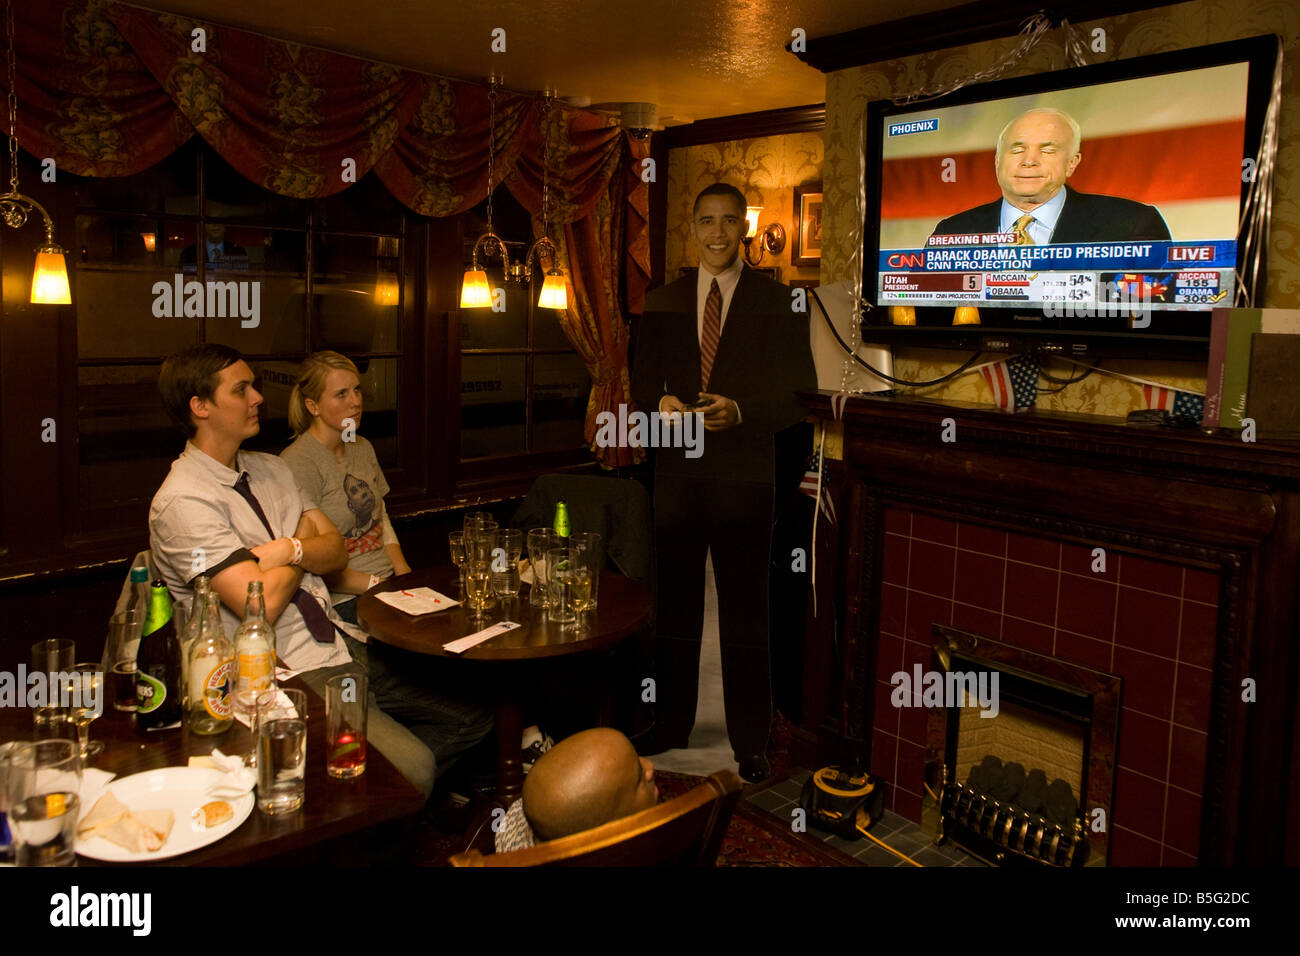 Young couple watch John McCain concede defeat by life-sized cut-out of Barack Obama after overnight 2008 election - Stock Image